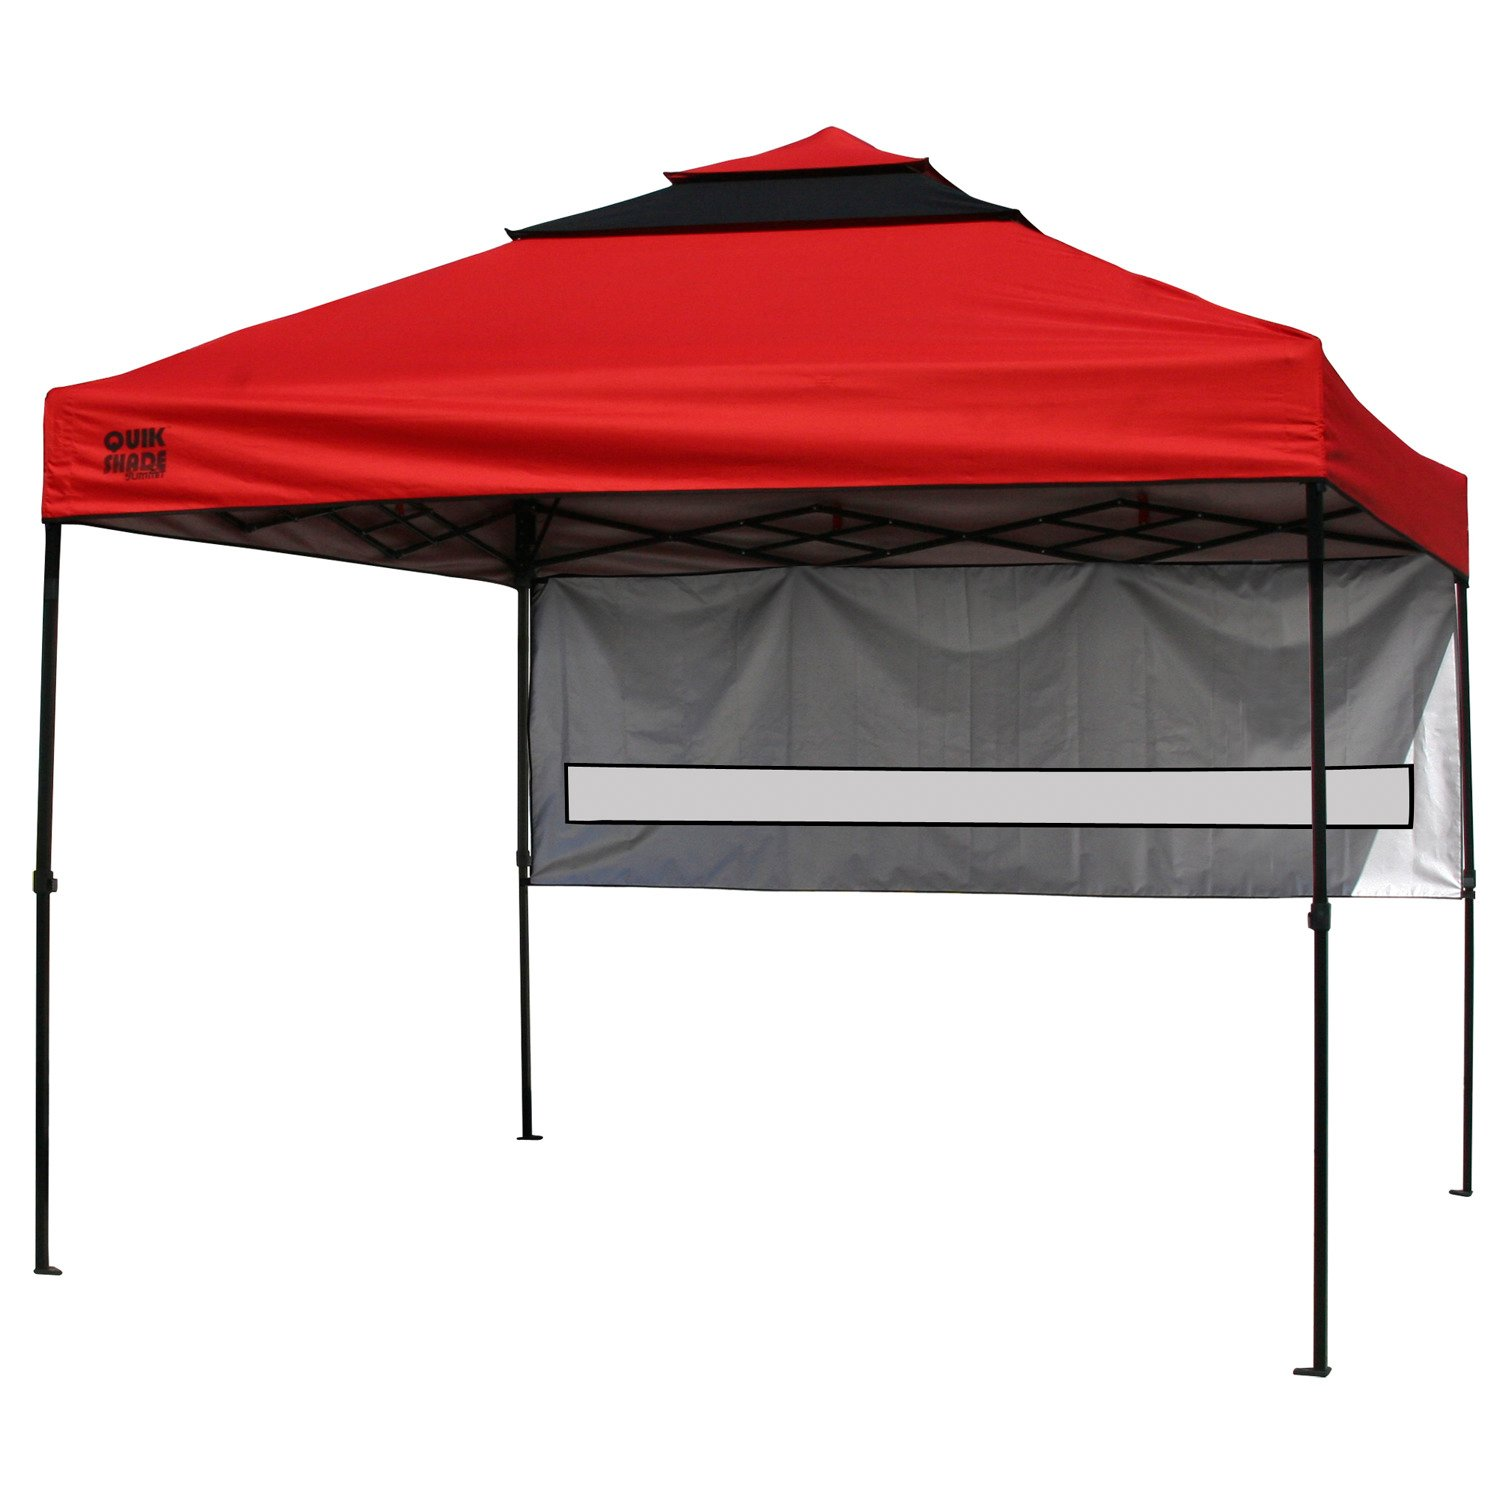 Hover/Click to enlarge  sc 1 st  Academy Sports + Outdoors & Quik Shade S100 10u0027 X 10u0027 Canopy | Academy